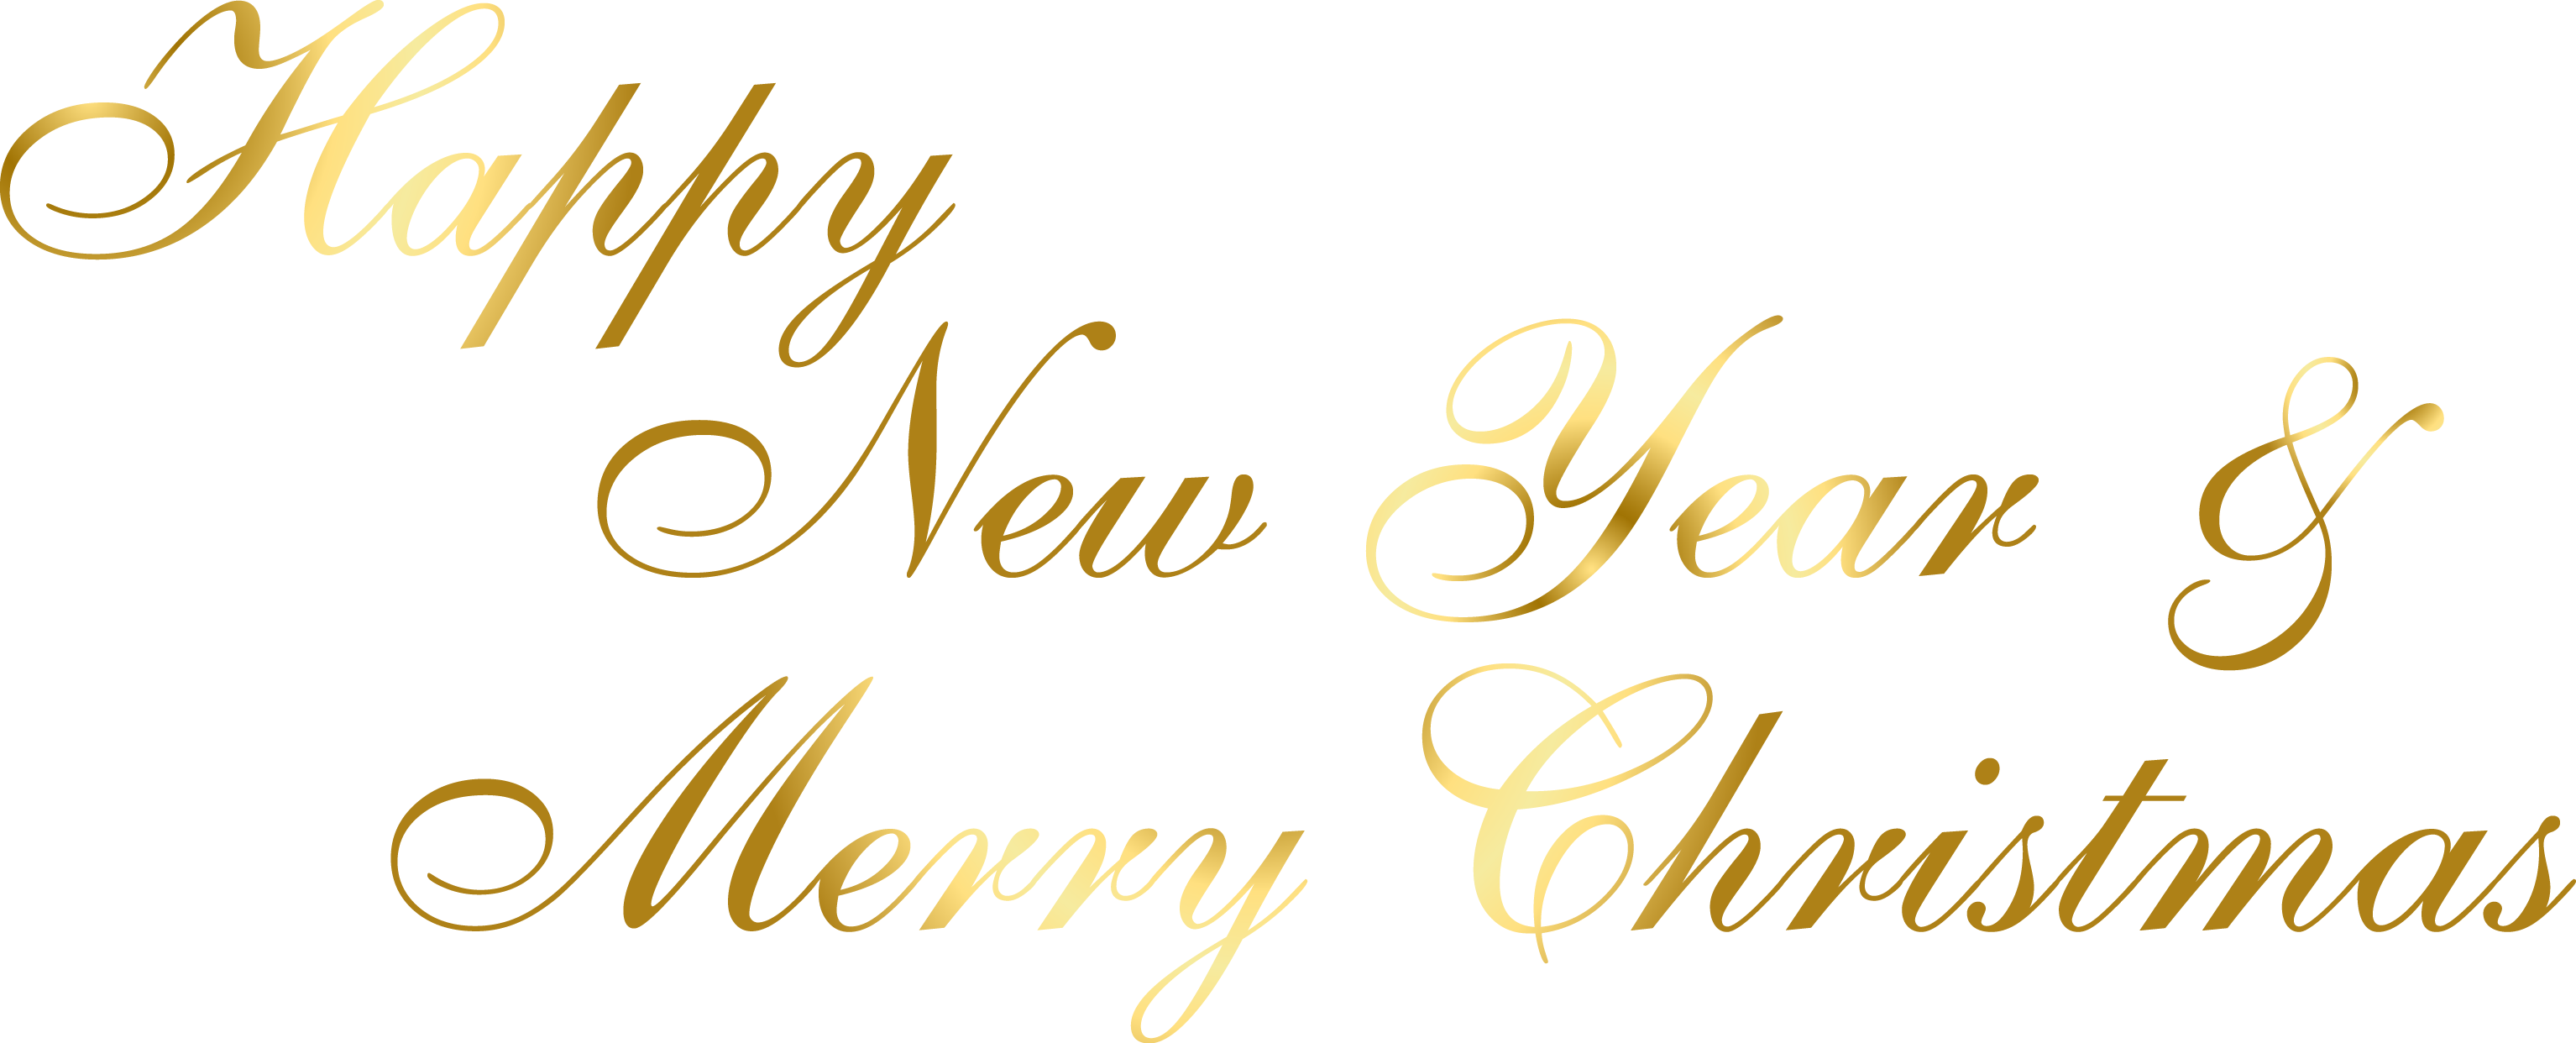 Happy New Year And Merry Christmas Png